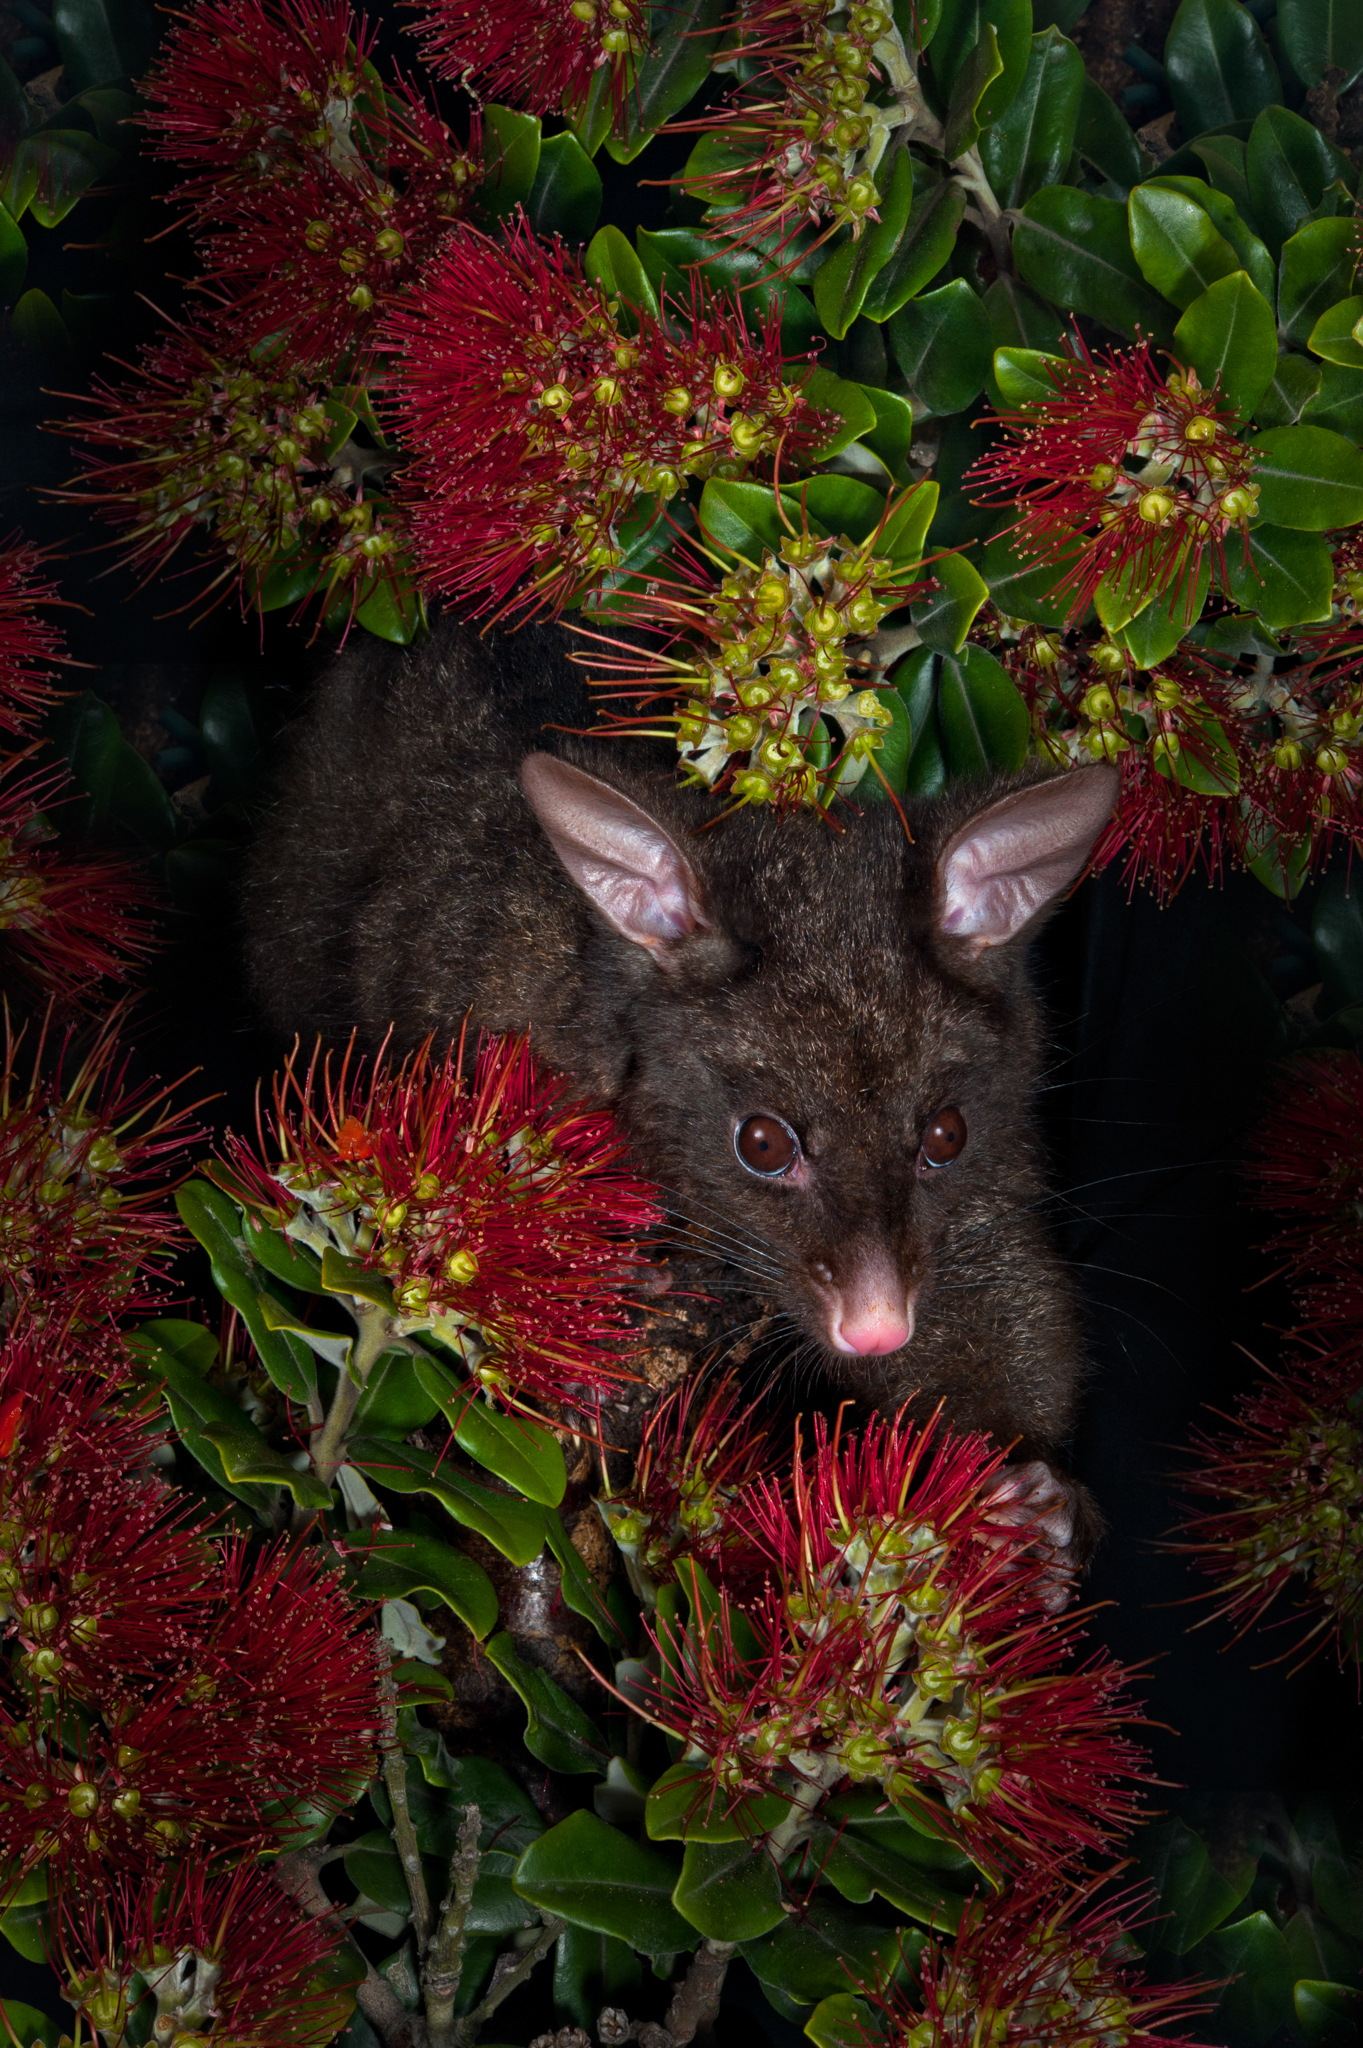 A brushtail possum (Trichosurus vulpecula) eating from a pohutukawa tree (Metrosideros excels). It is a threat to this and other native Metrosideros species. Photograph by Rod Morris / www.rodmorris.co.nz